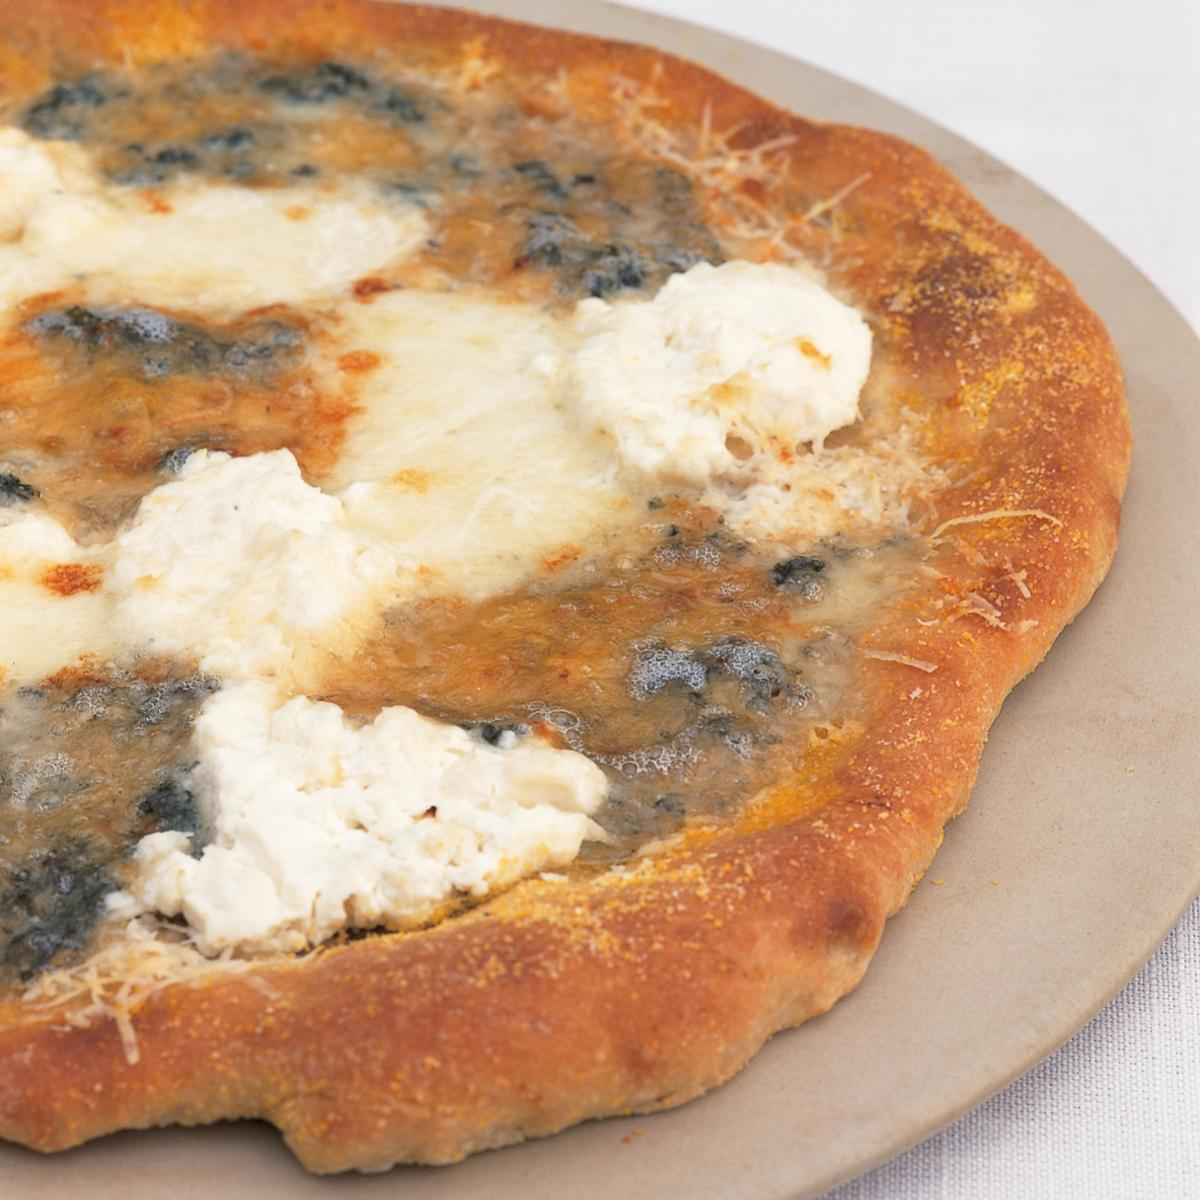 A picture of Delia's Quattro Formaggio (Four Cheese) Pizza recipe